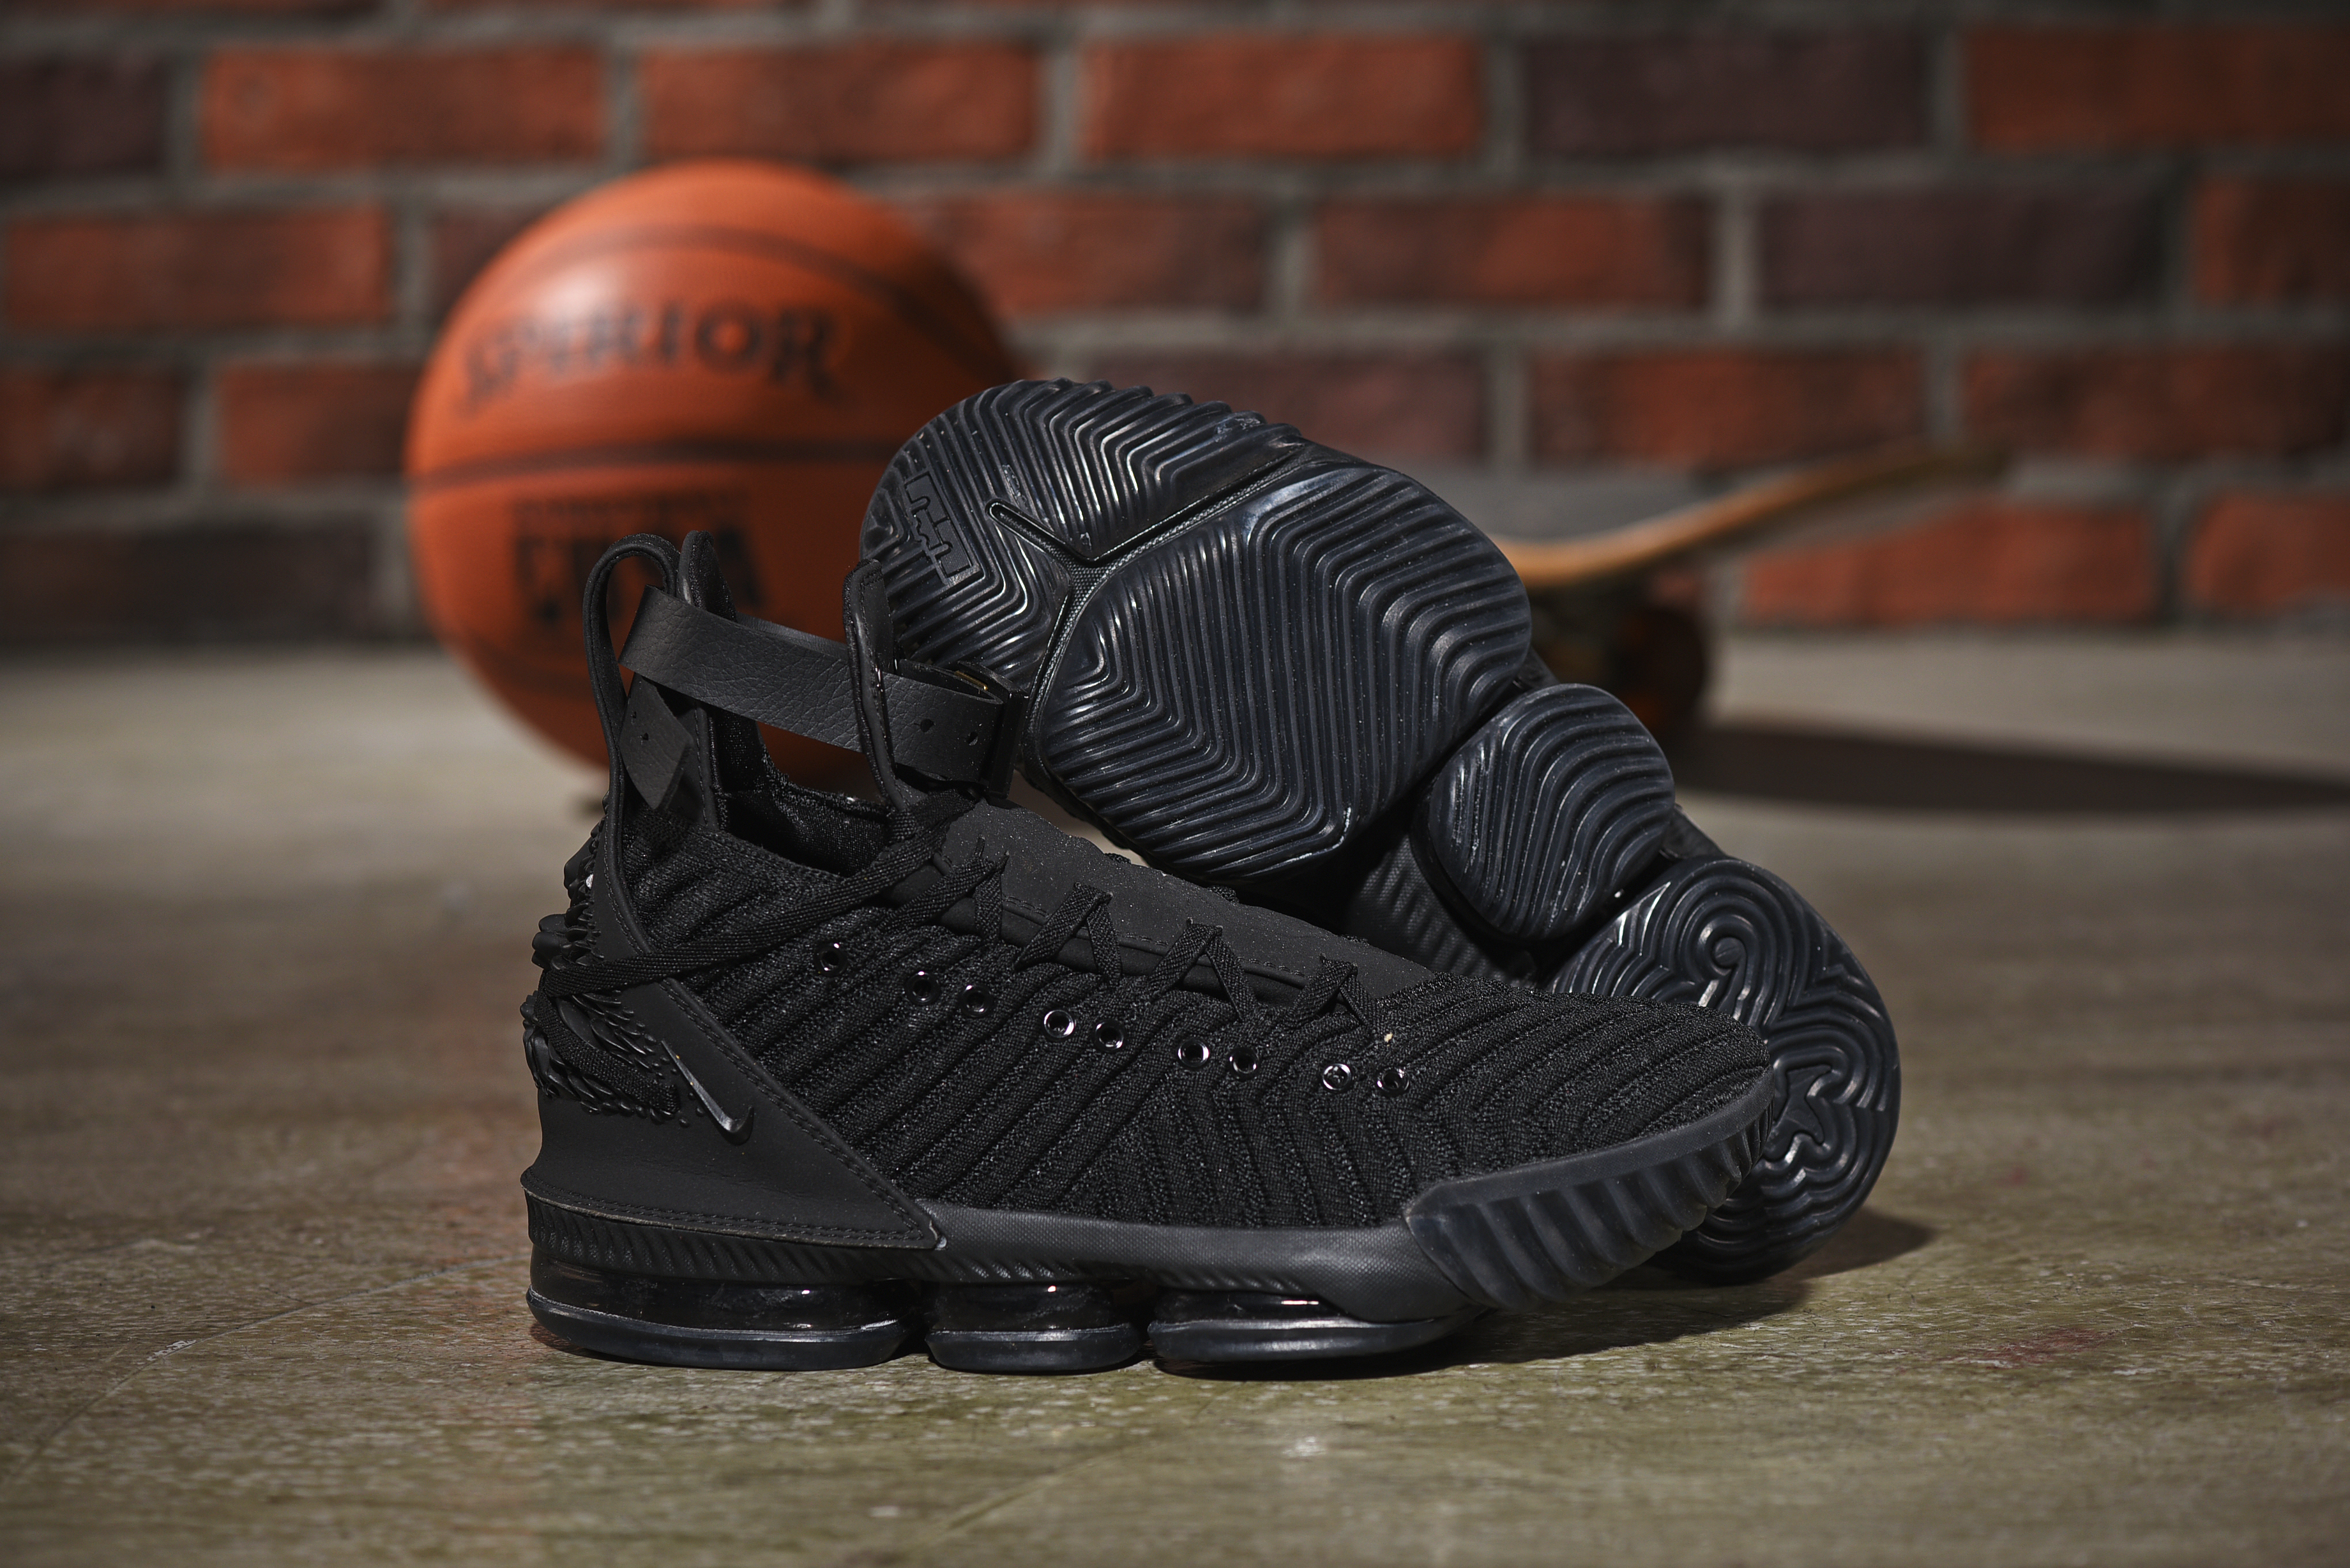 Nike LeBron 16 Emboss All Black Shoes